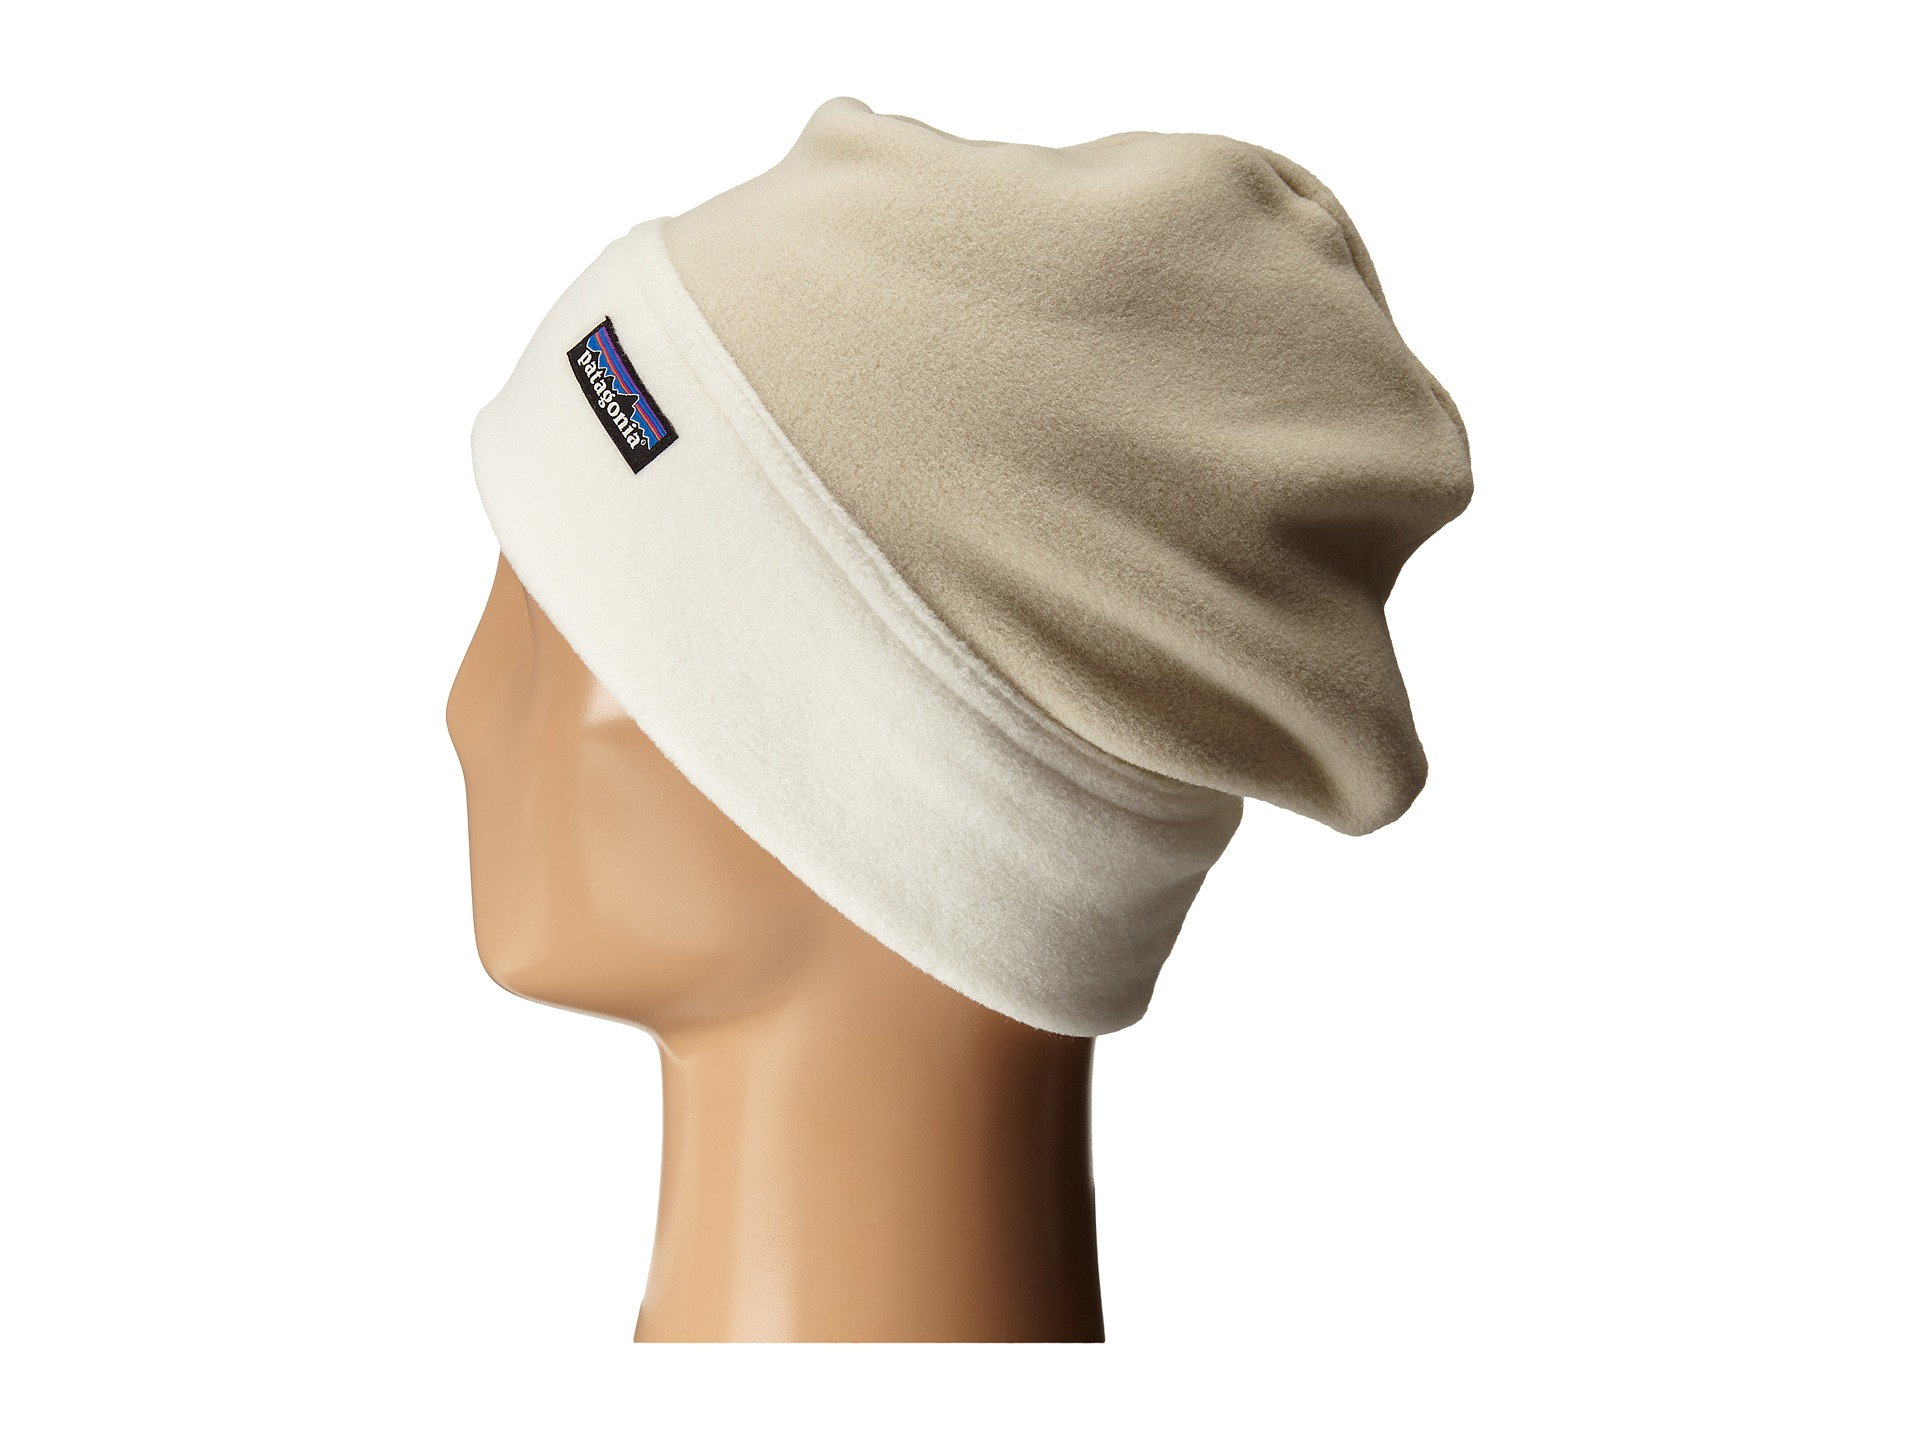 531b3d3068d25 Lyst - Patagonia Synch Alpine Hat in Natural